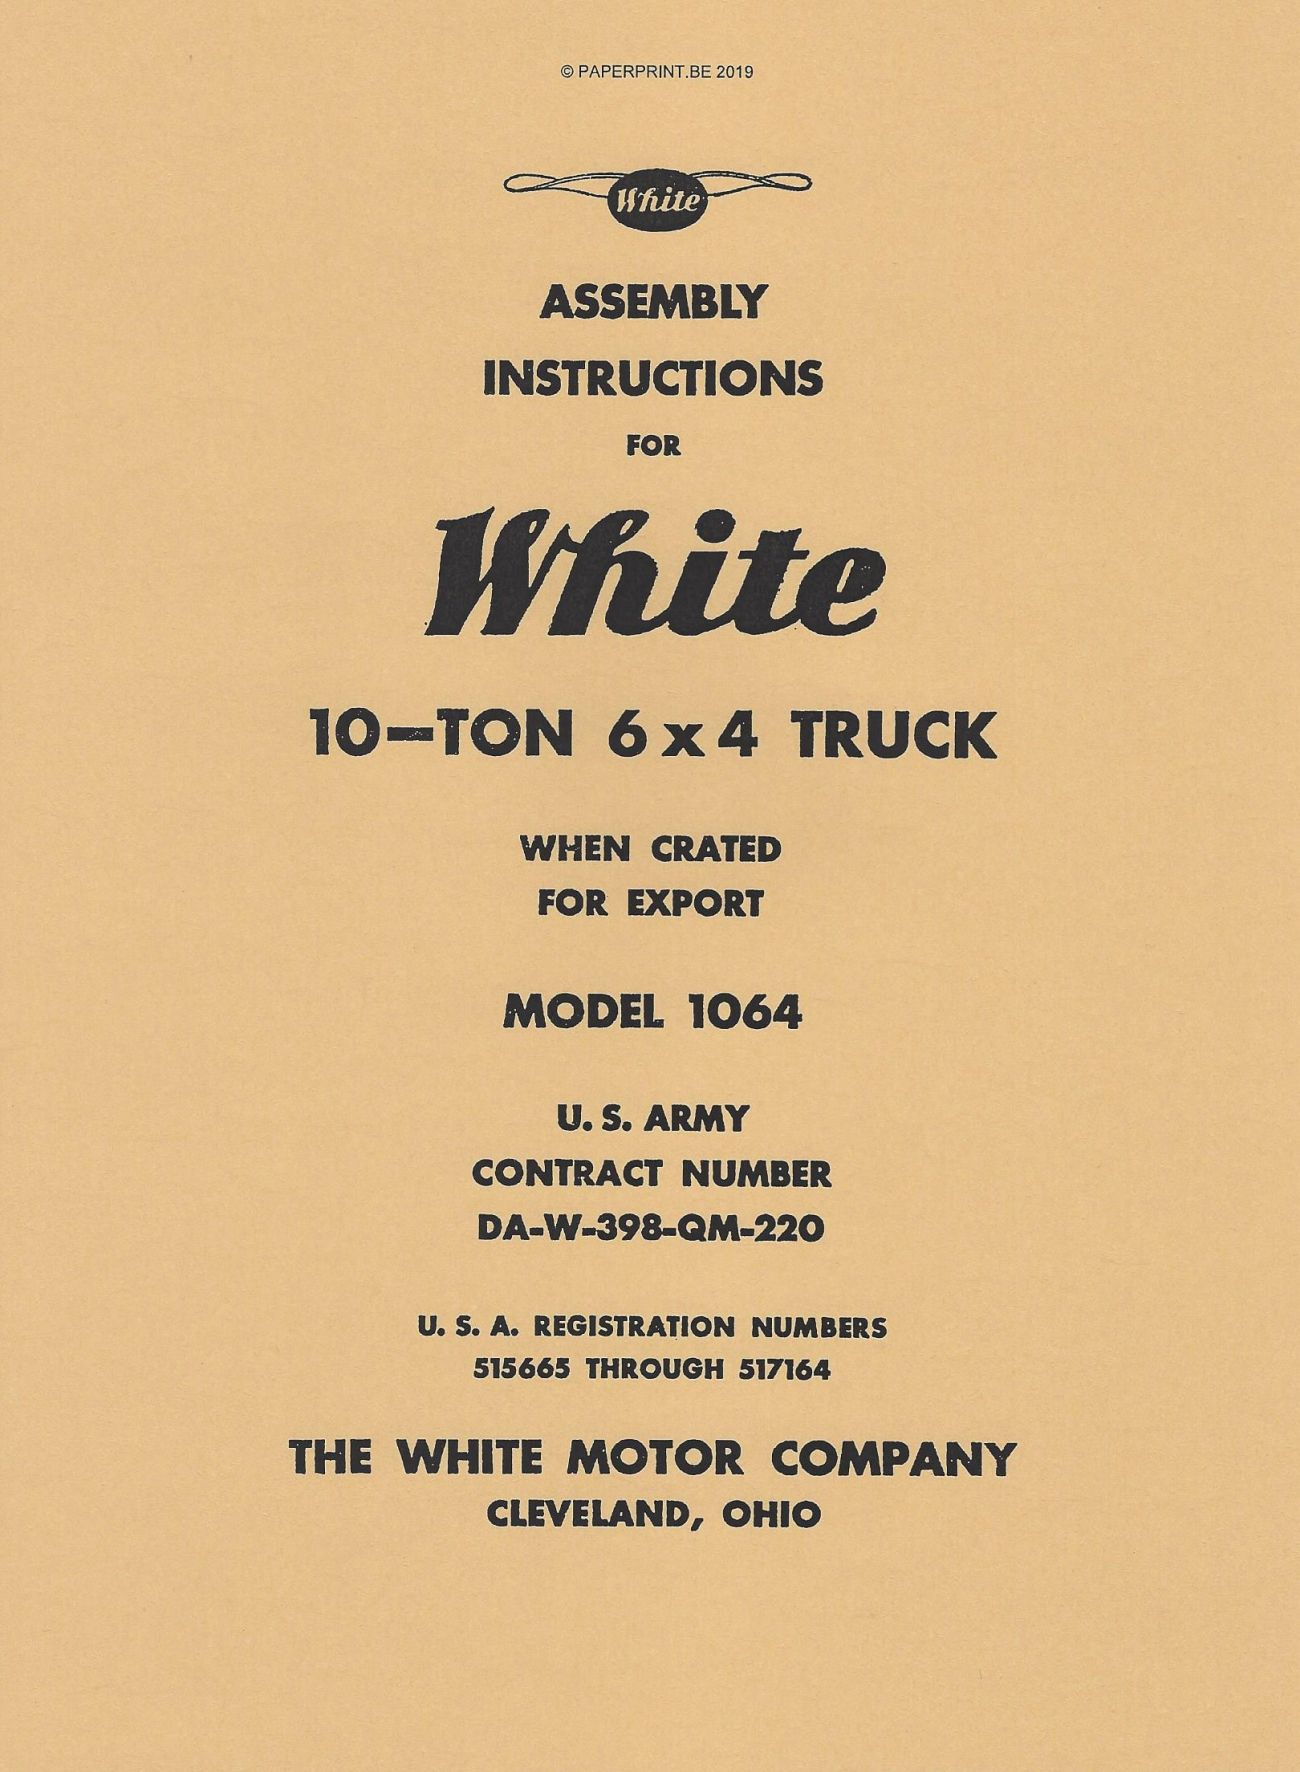 ASSEMBLY INSTRUCTIONS WHITE 6x4 MODEL 1064